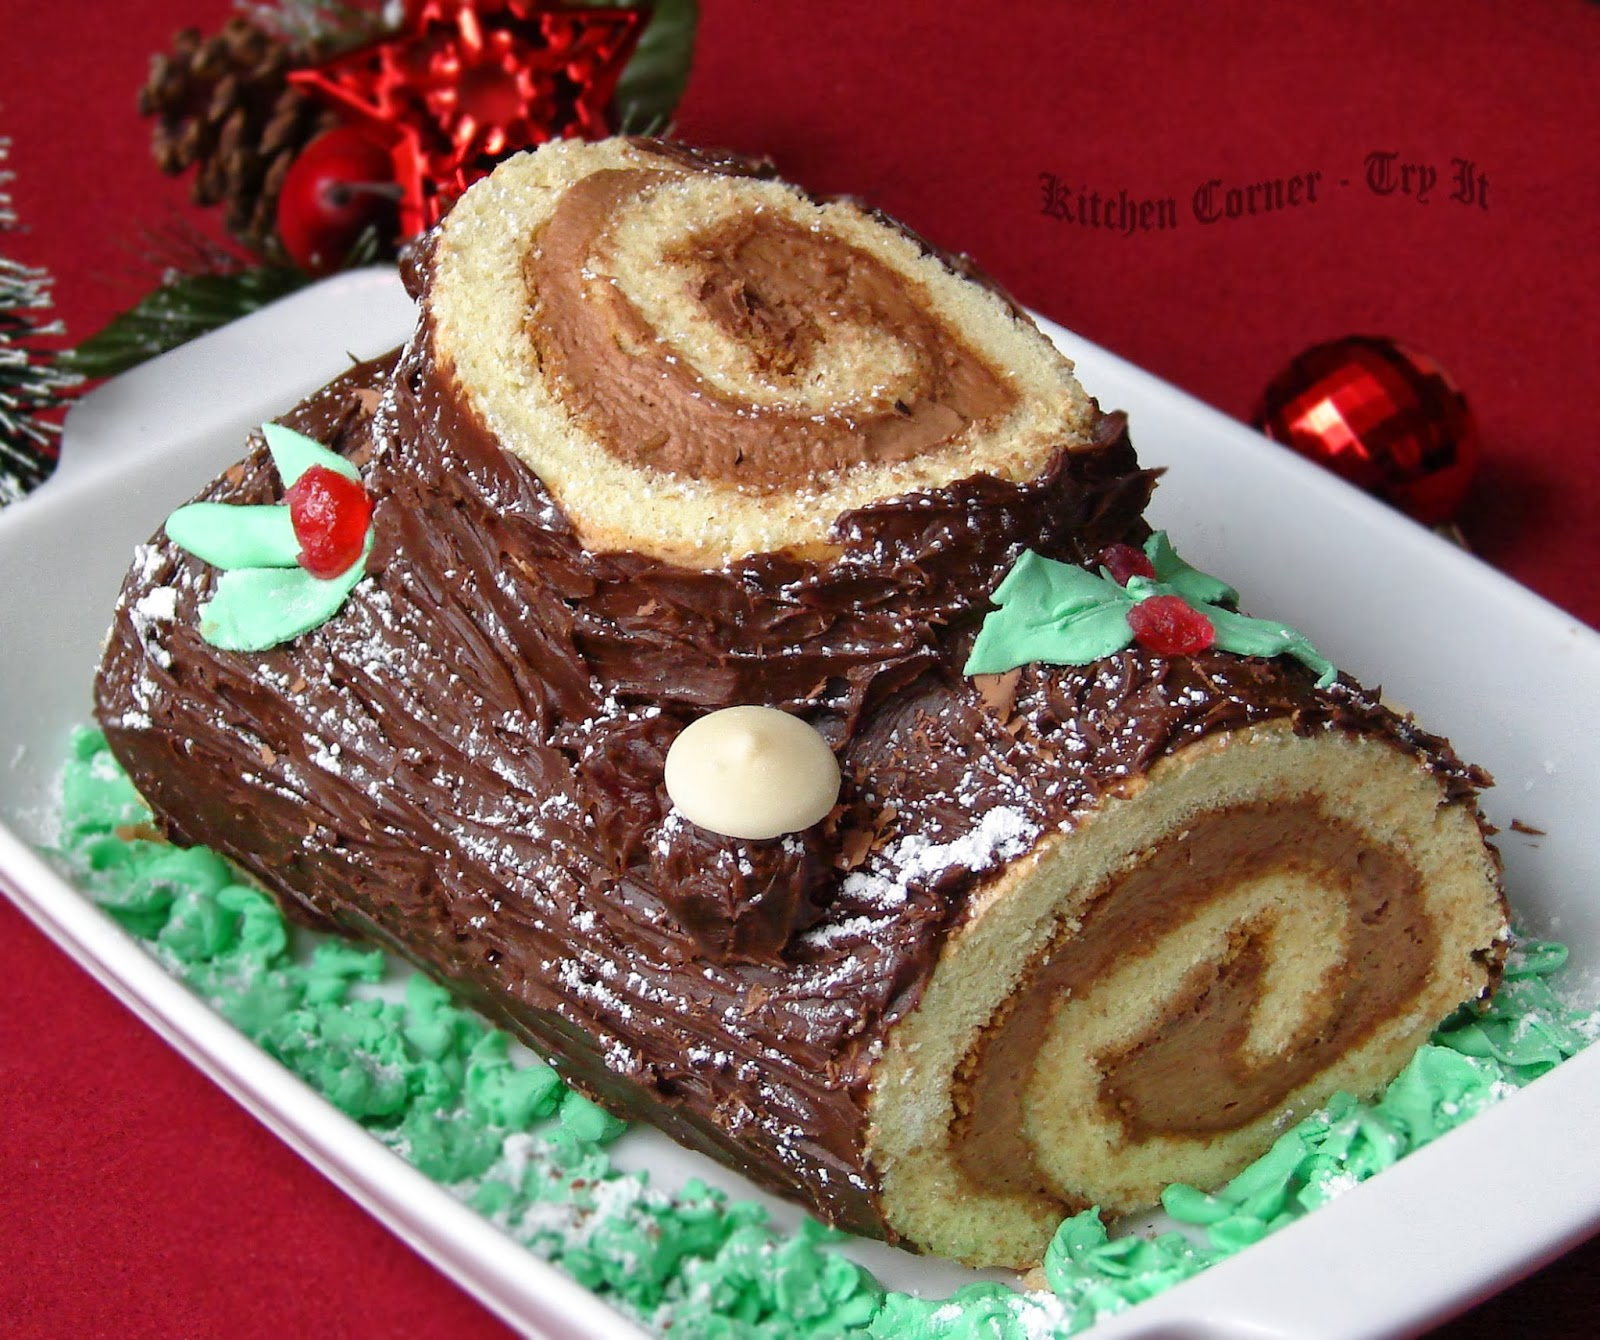 ... -Try It: Bûche de Noël/Yule Log Cake~ Baking Partners Challenge